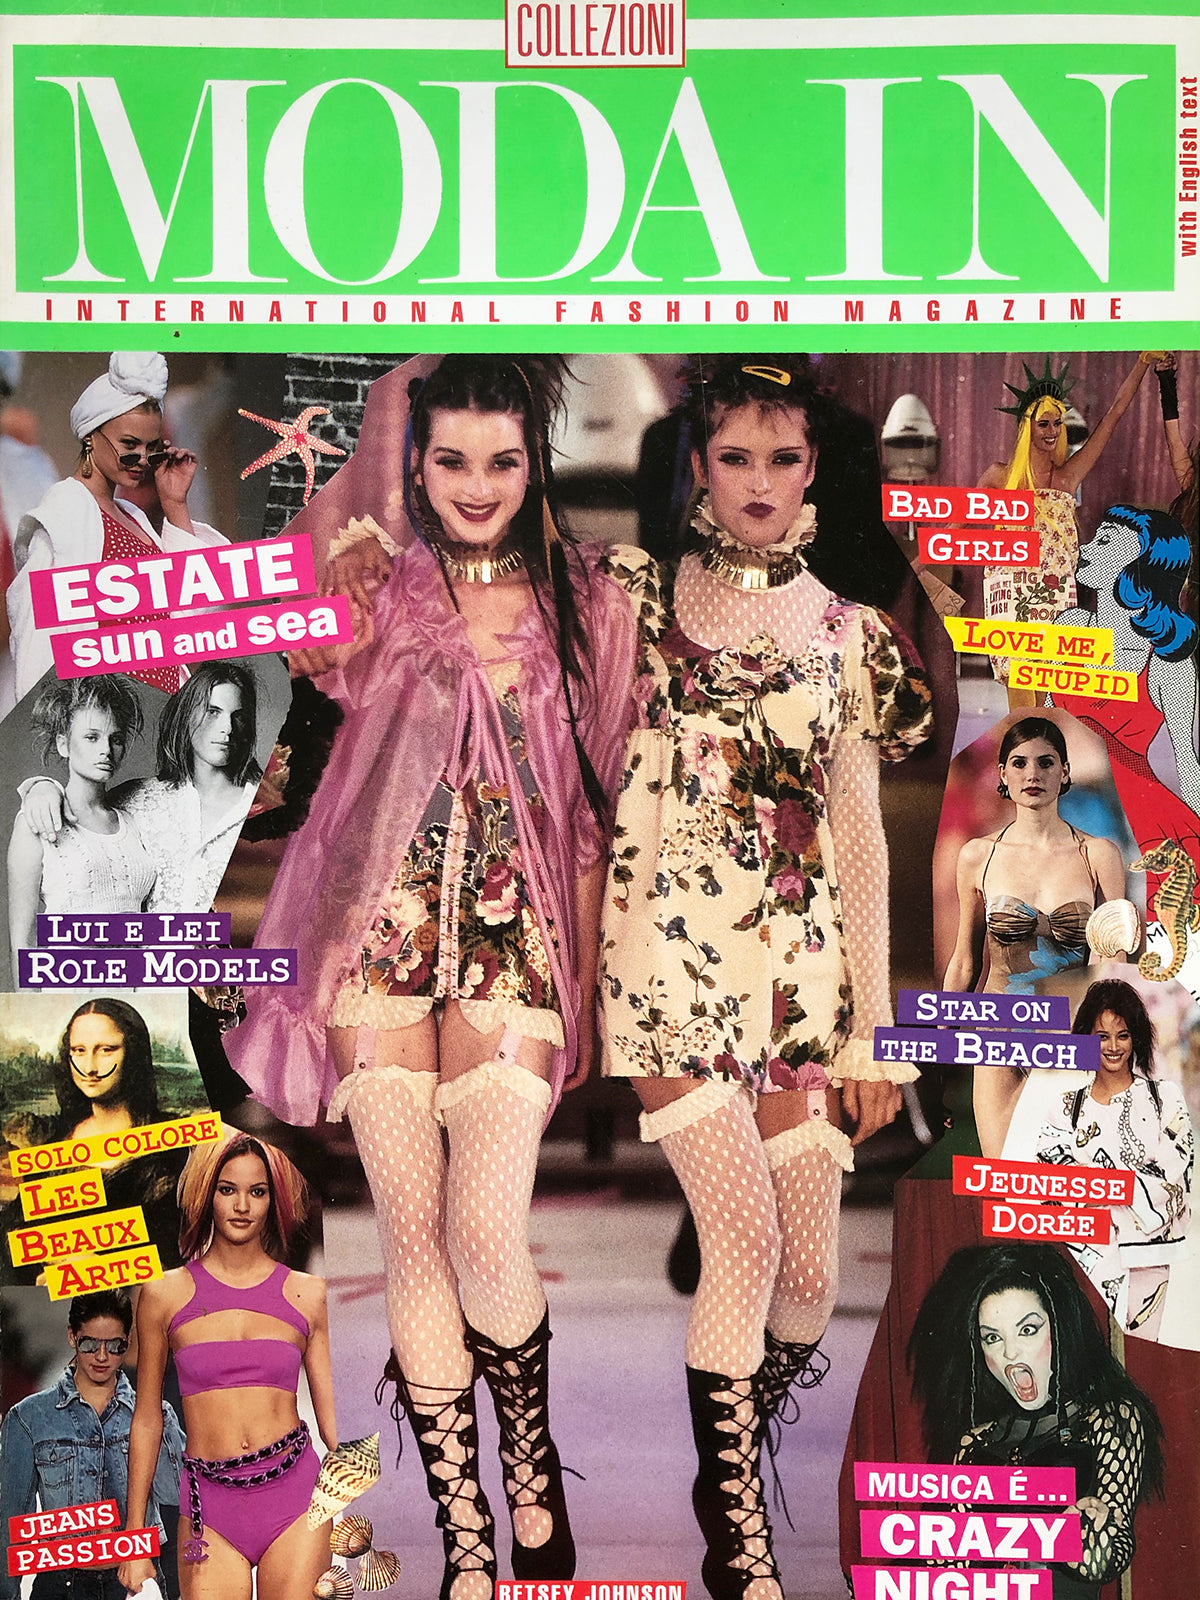 Archived - MODA IN Collezioni N. 91 April-June 1994